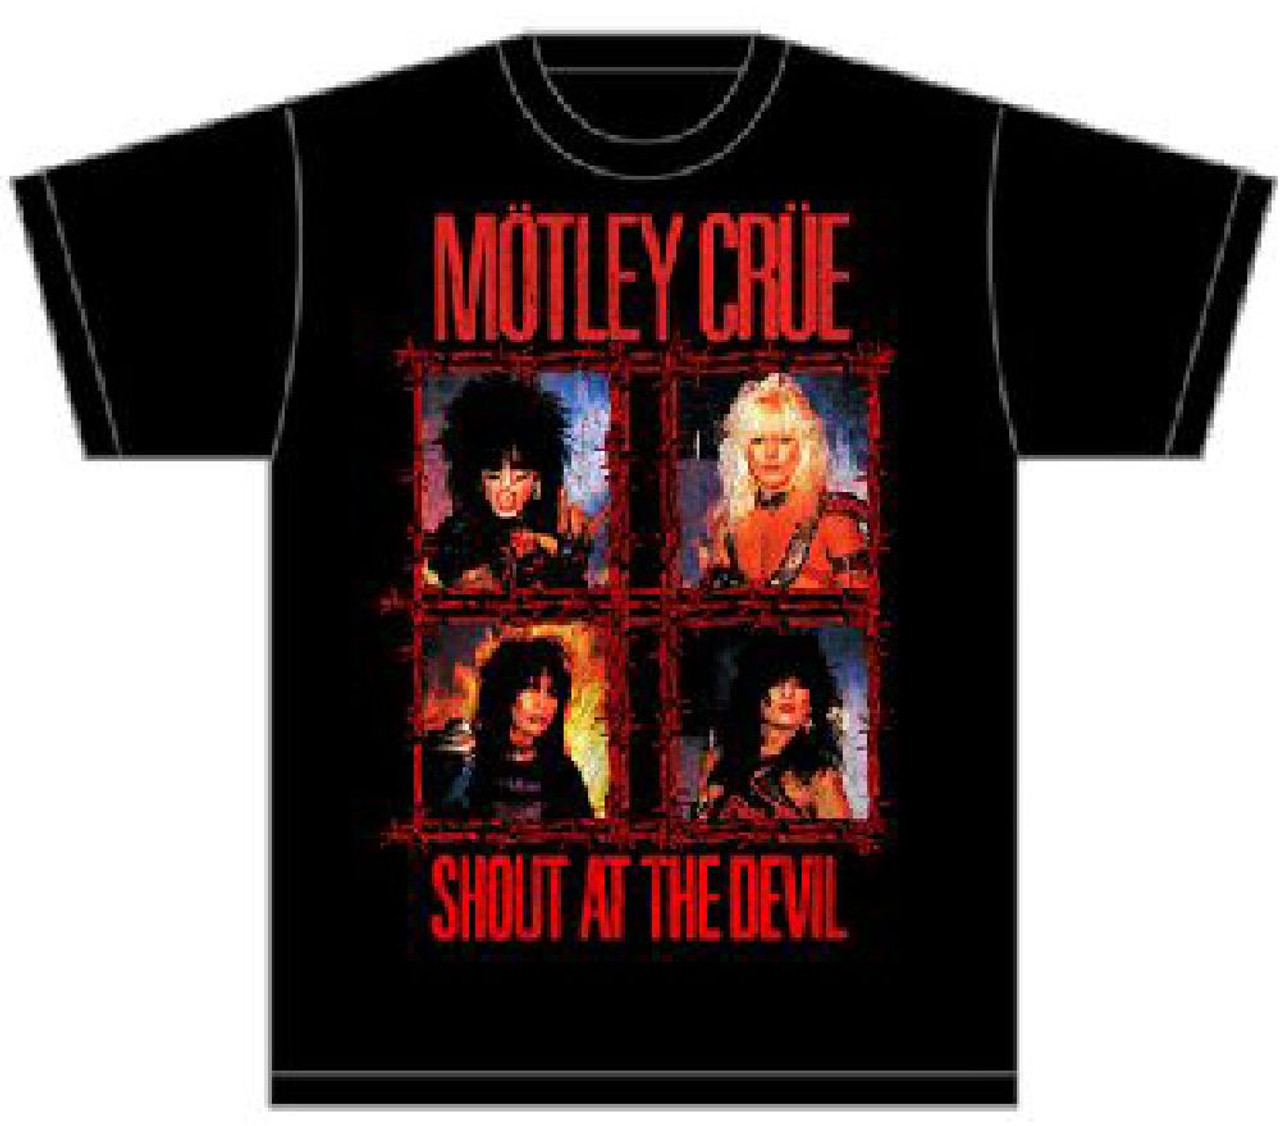 4cf55af2c98 Motley Crue Shout at the Devil Album Cover Artwork Men s Black T-shirt